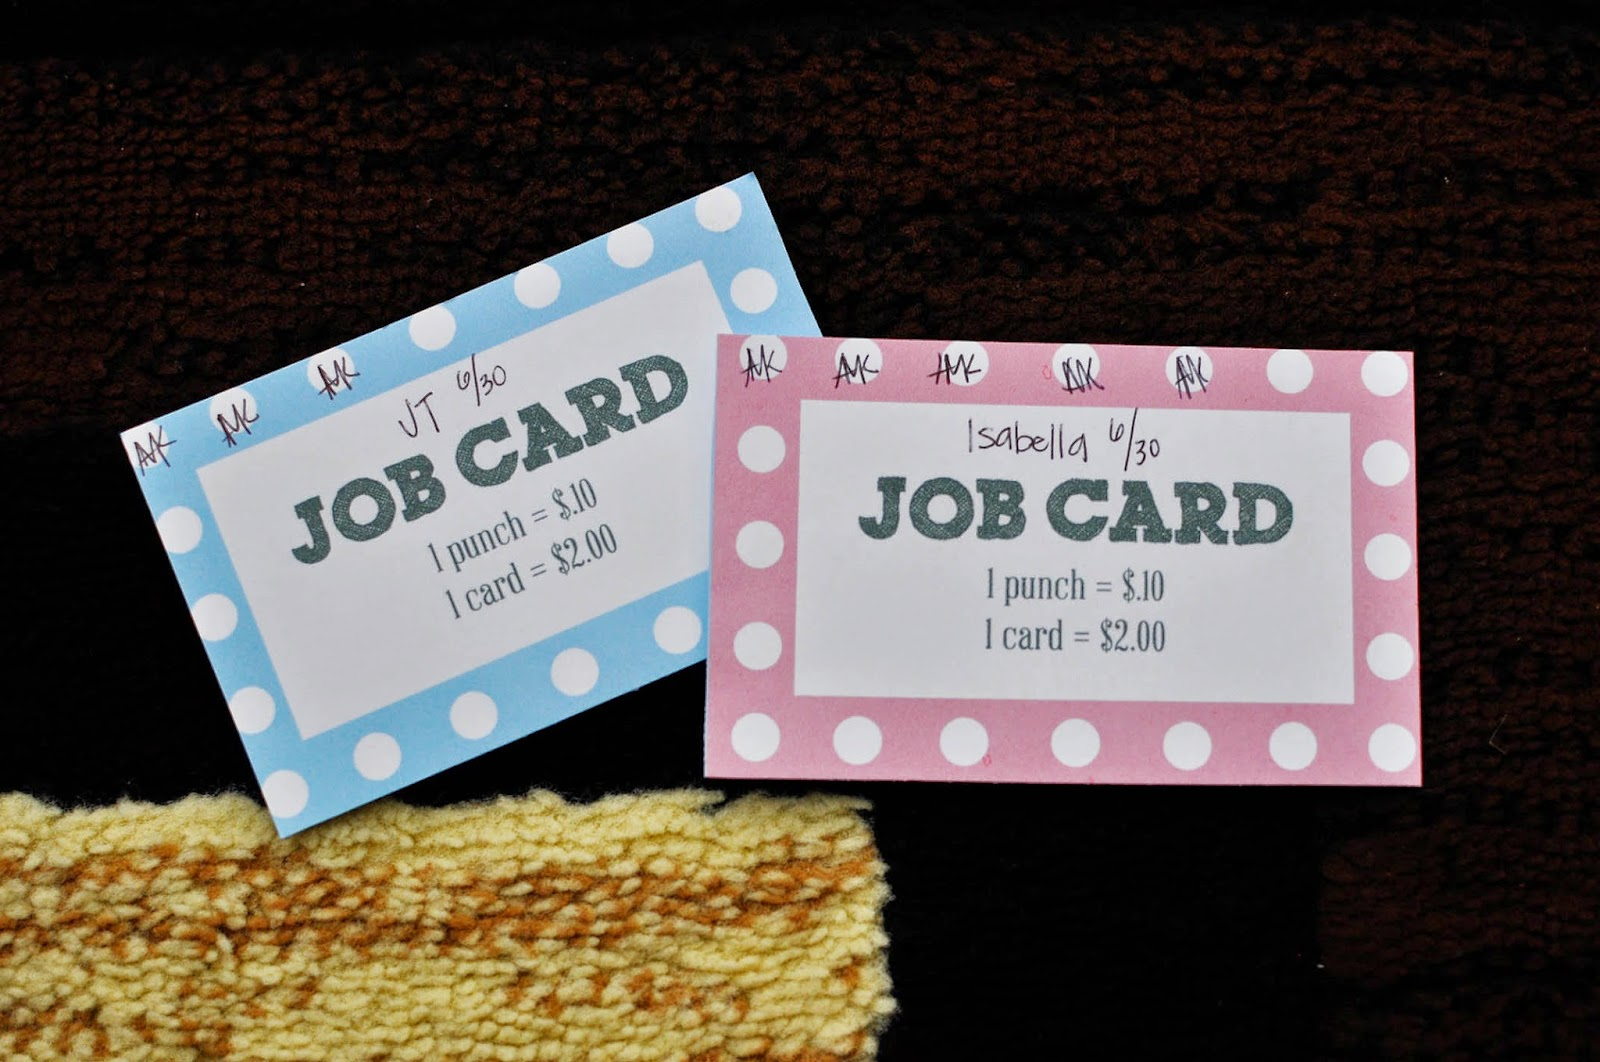 chore punch card